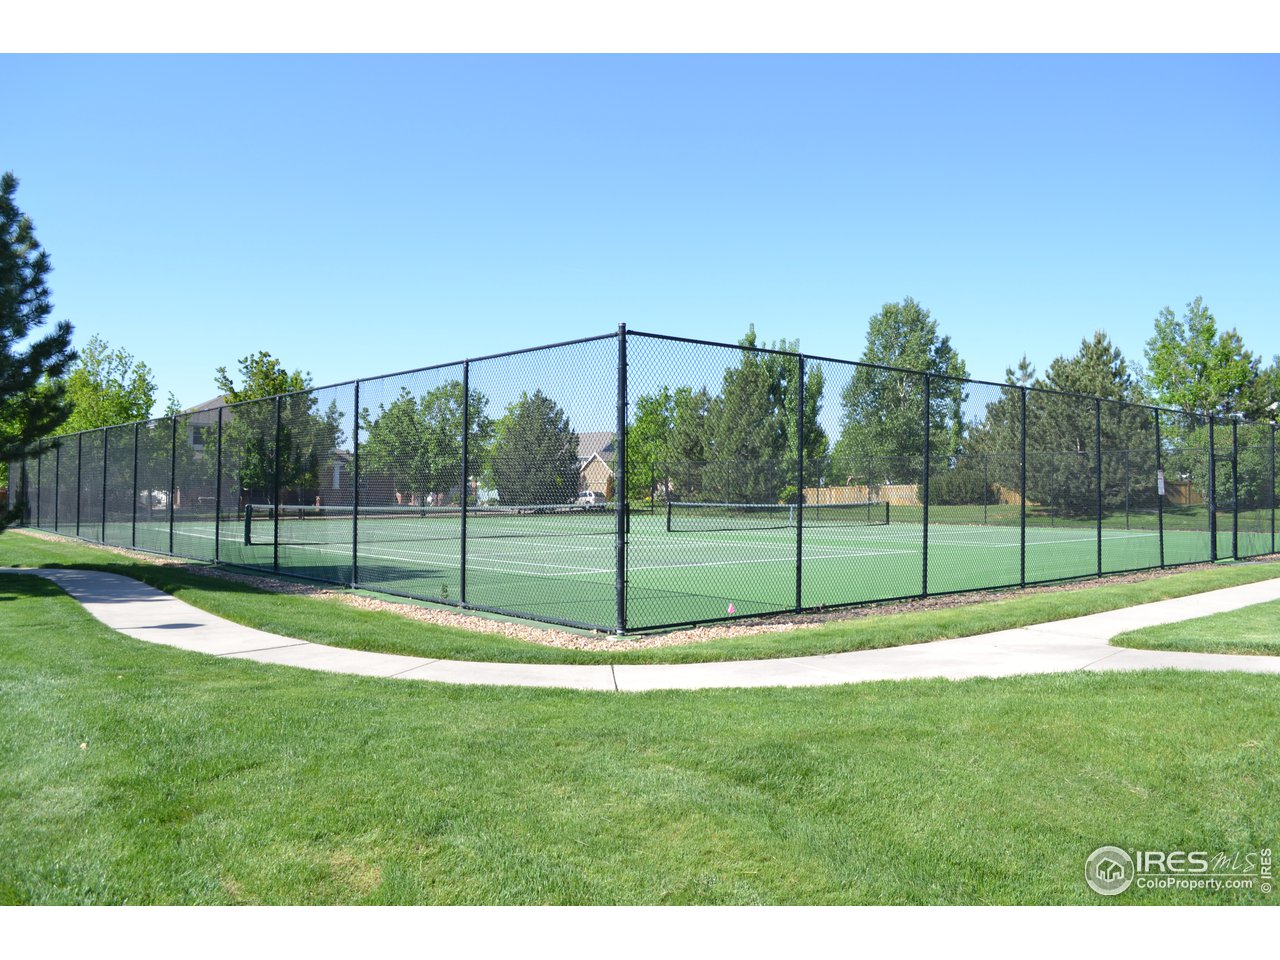 Both Public and Private Tennis Nearby